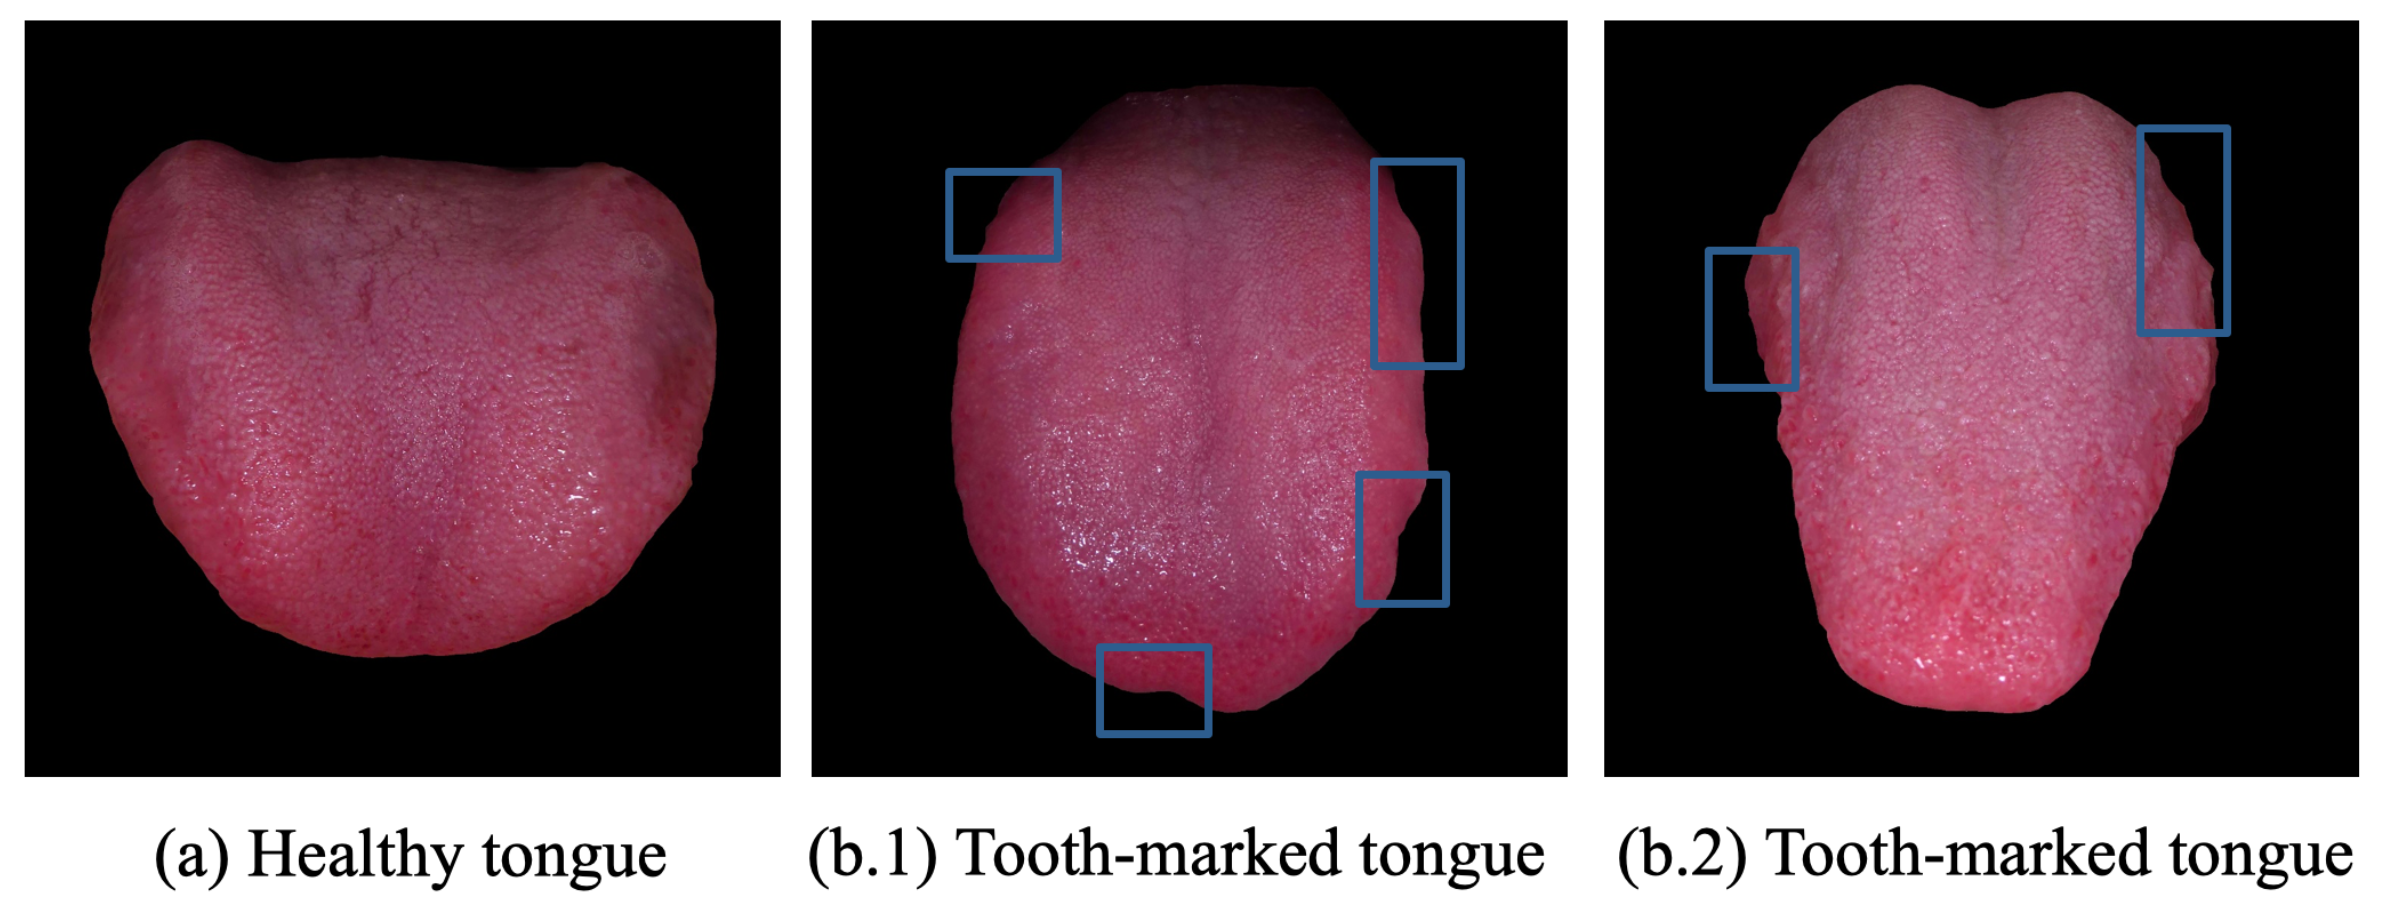 Future Internet   Free Full-Text   Tooth-Marked Tongue